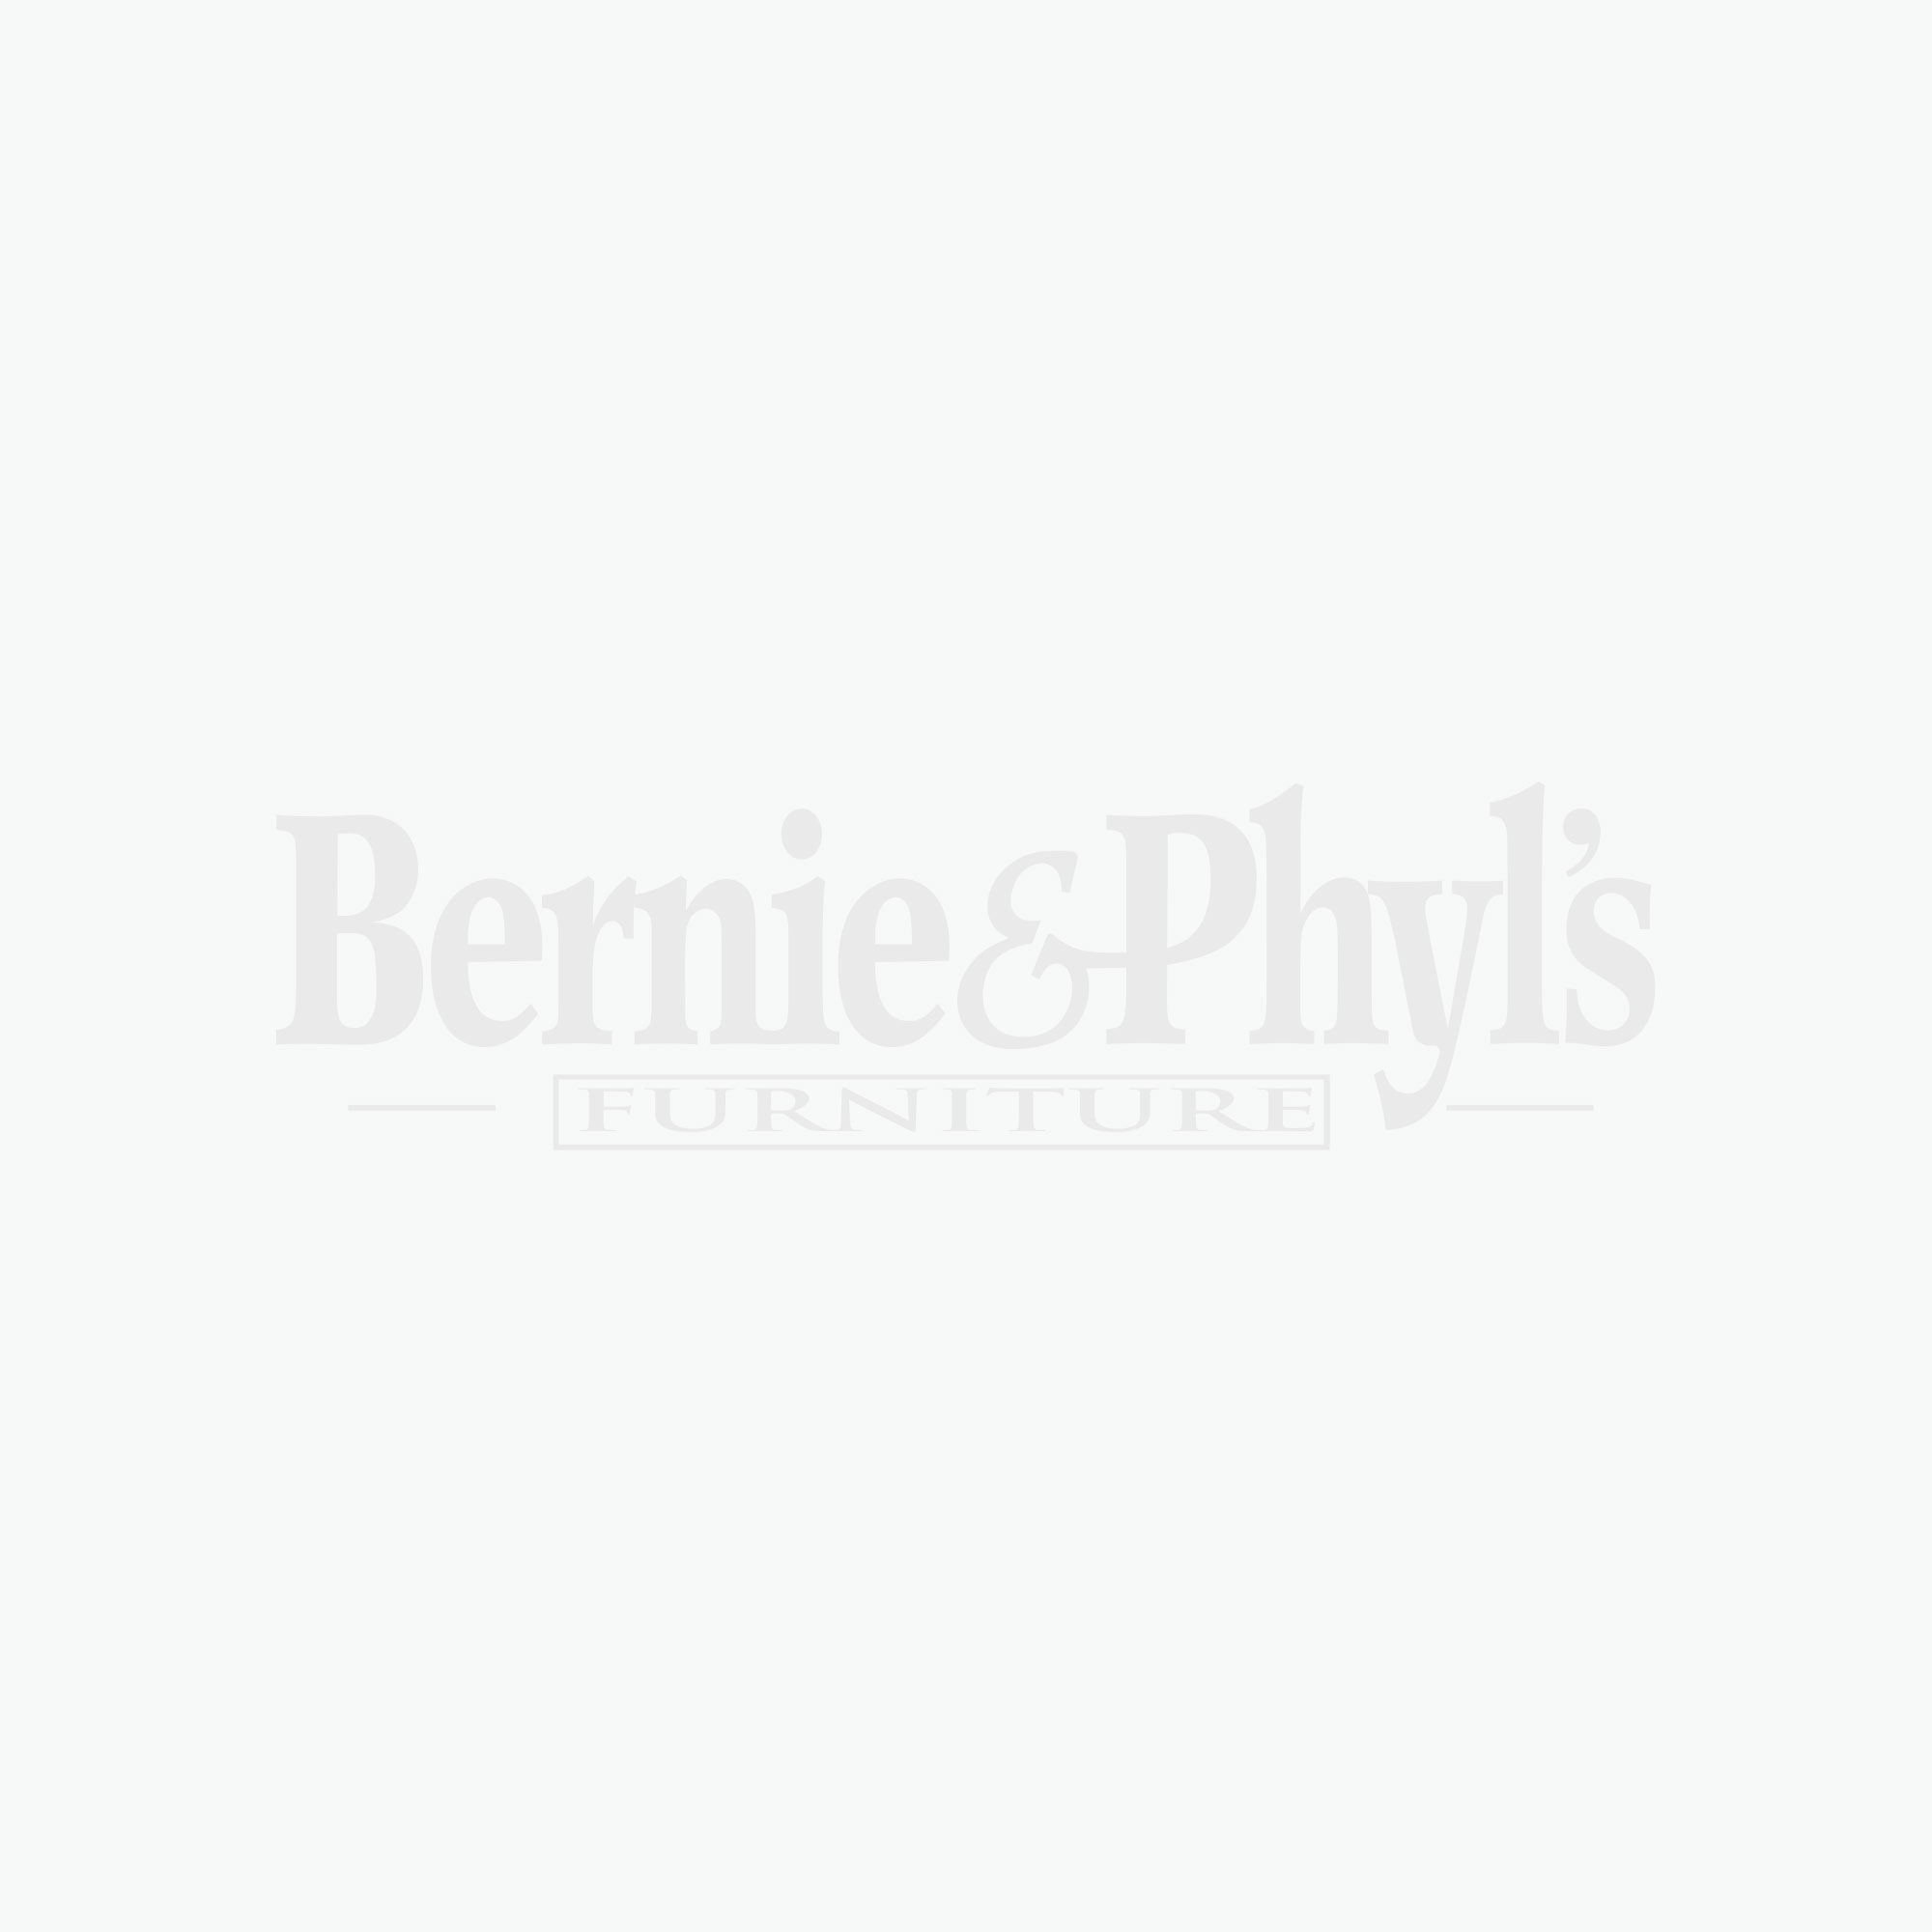 Brook Dinette Pub Table